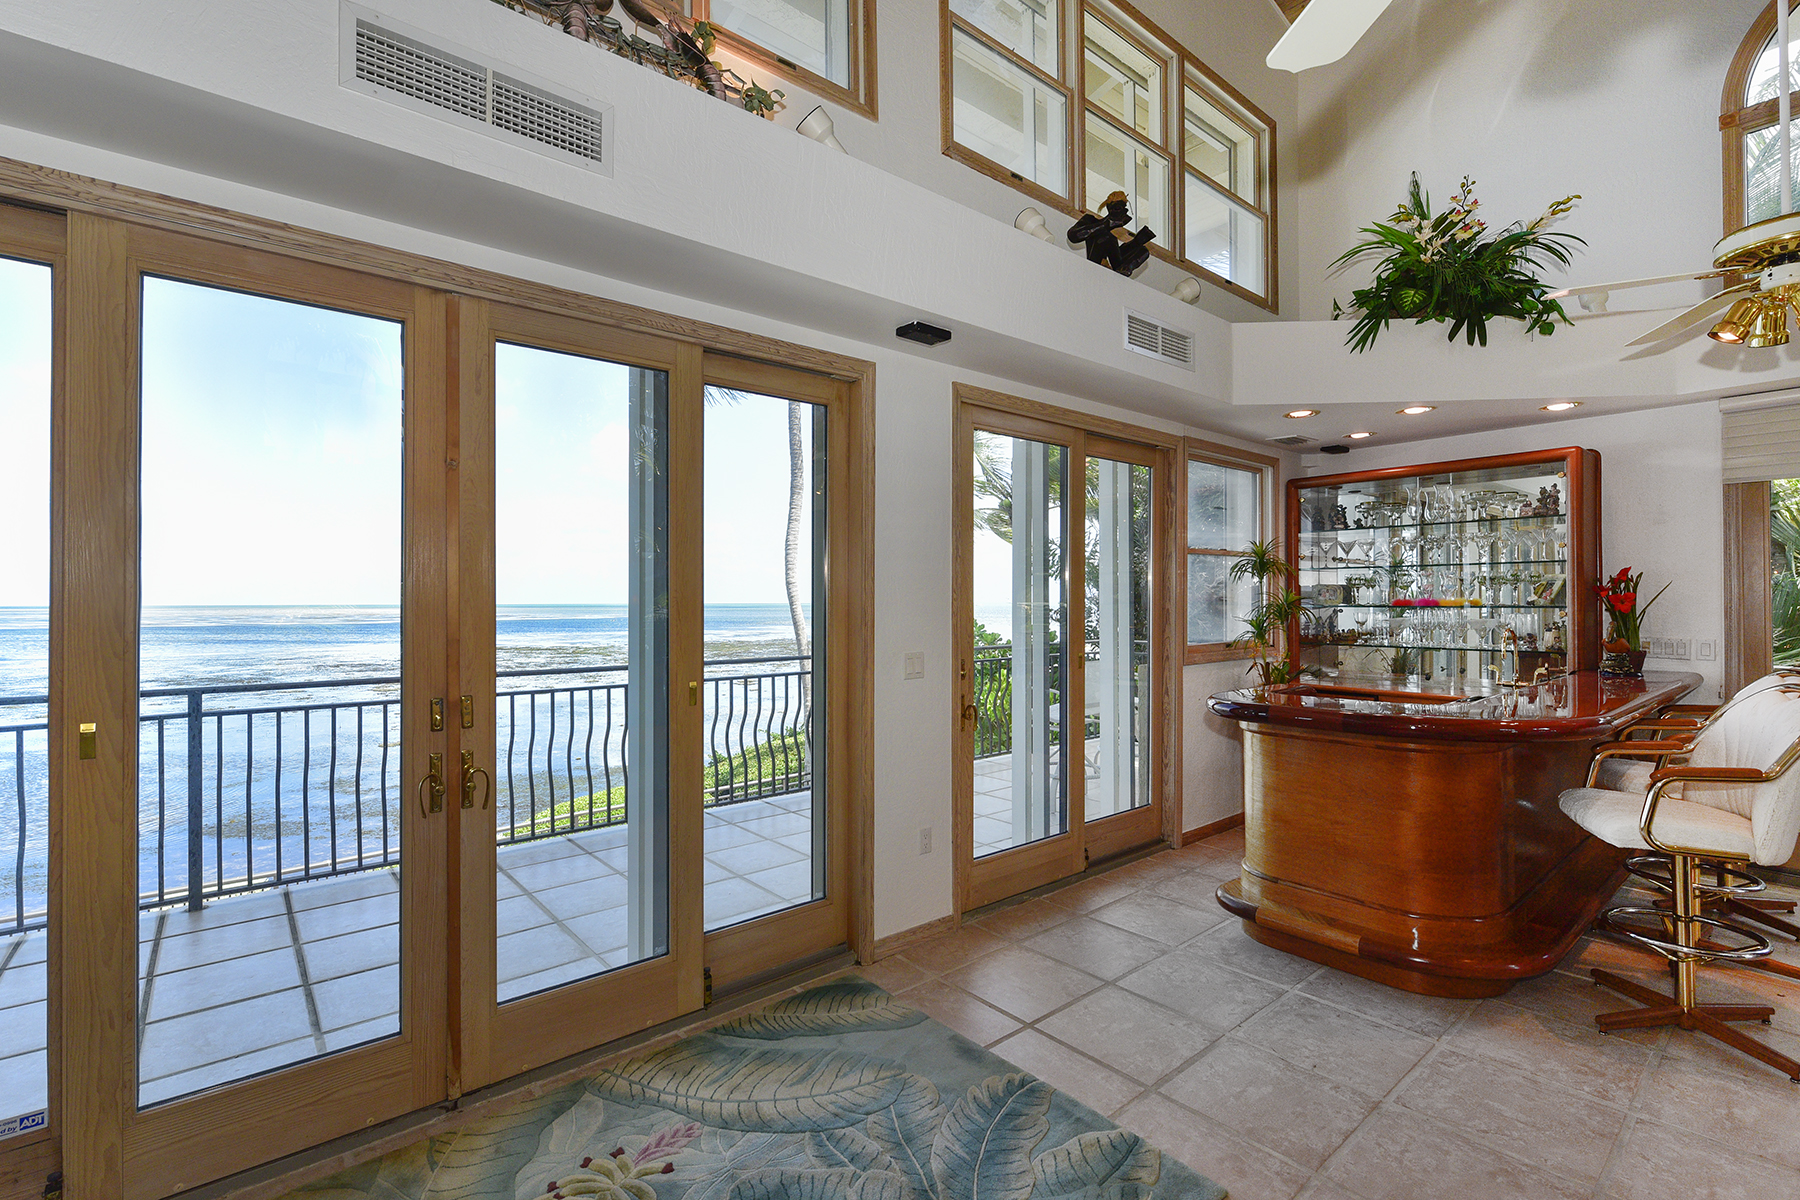 Additional photo for property listing at Gated & Private Oceanfront Location 544 Ocean Cay Key Largo, Florida 33037 United States